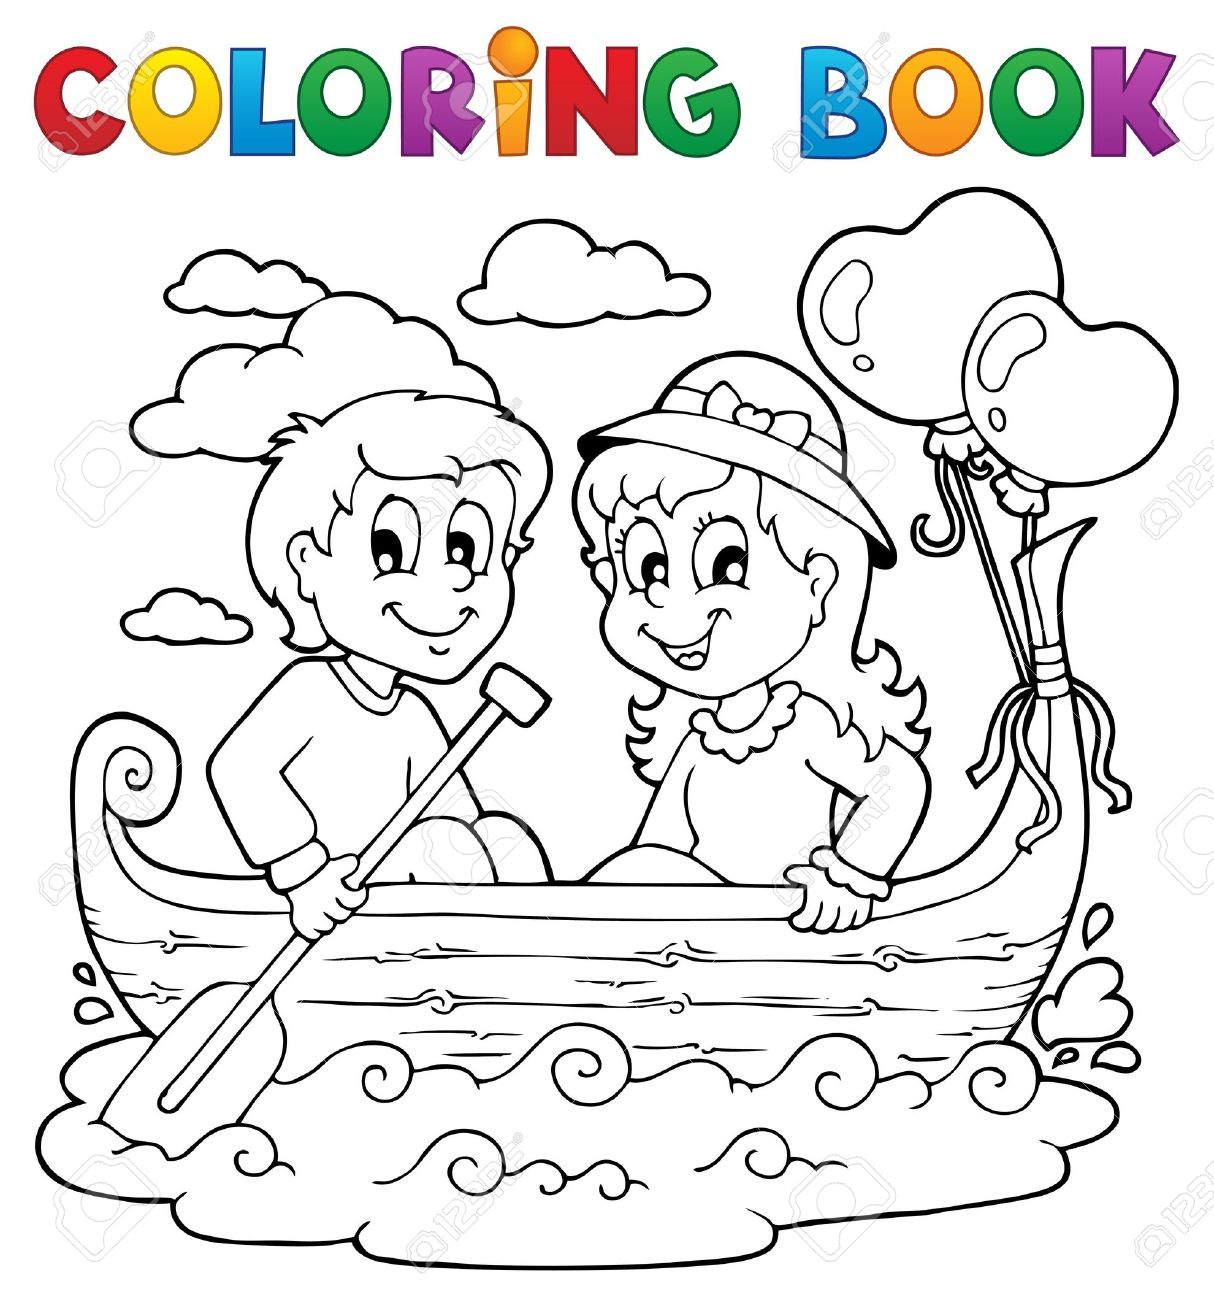 Coloring Book Love Theme Image 1 Stock Vector